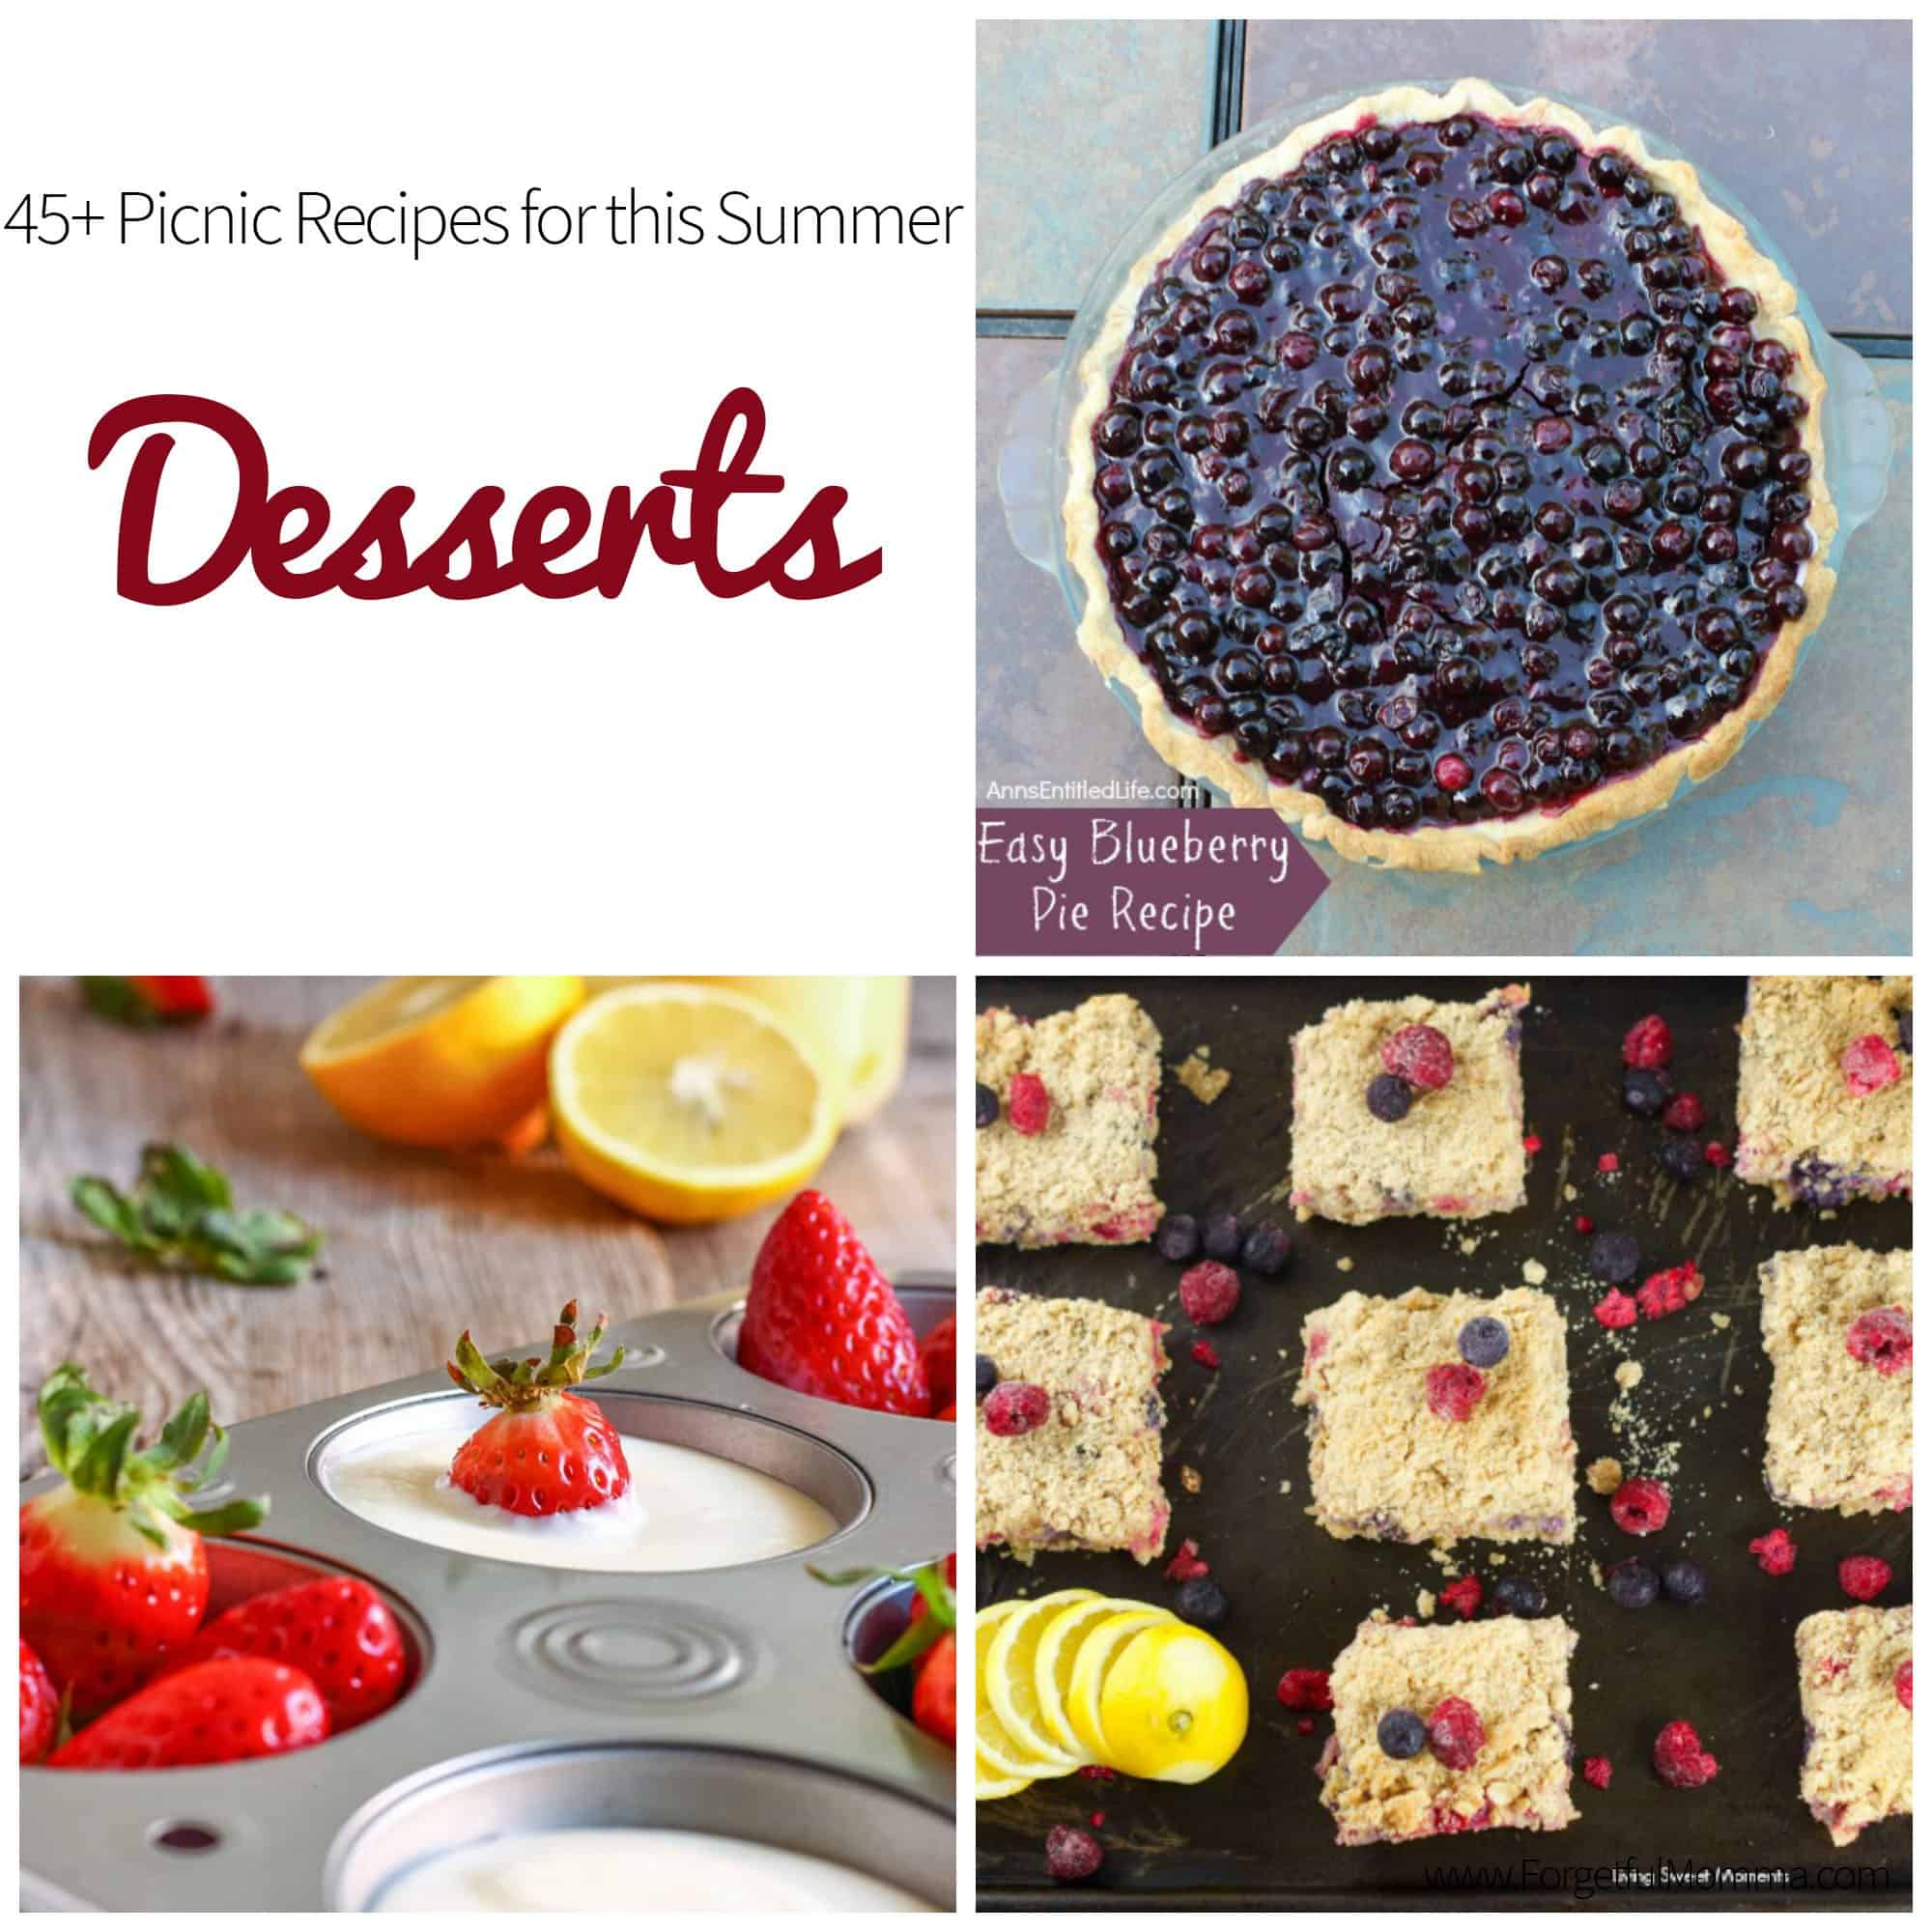 45+ Picnic Recipes for this Summer